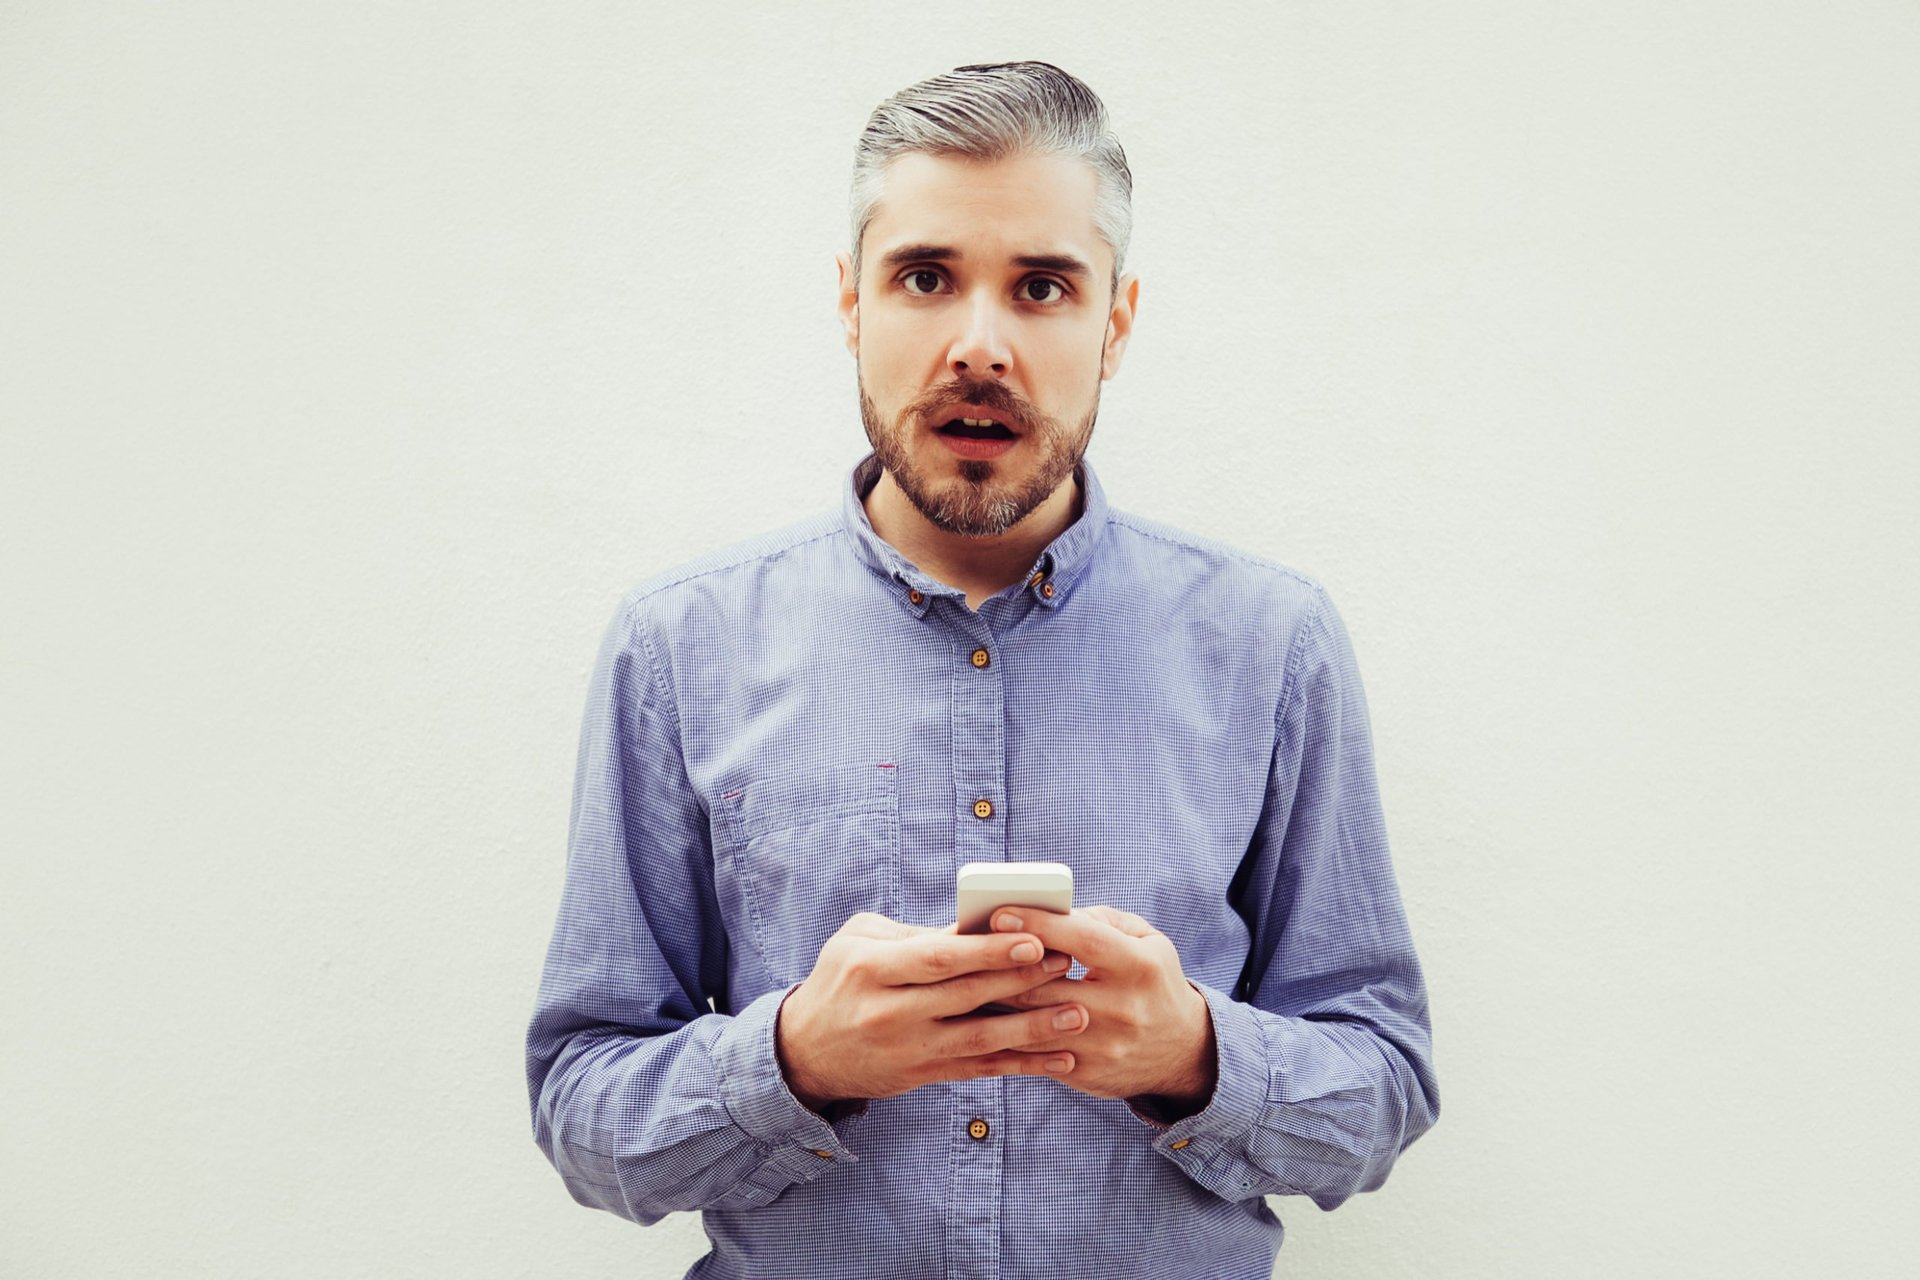 Man looks surprised by his cell phone